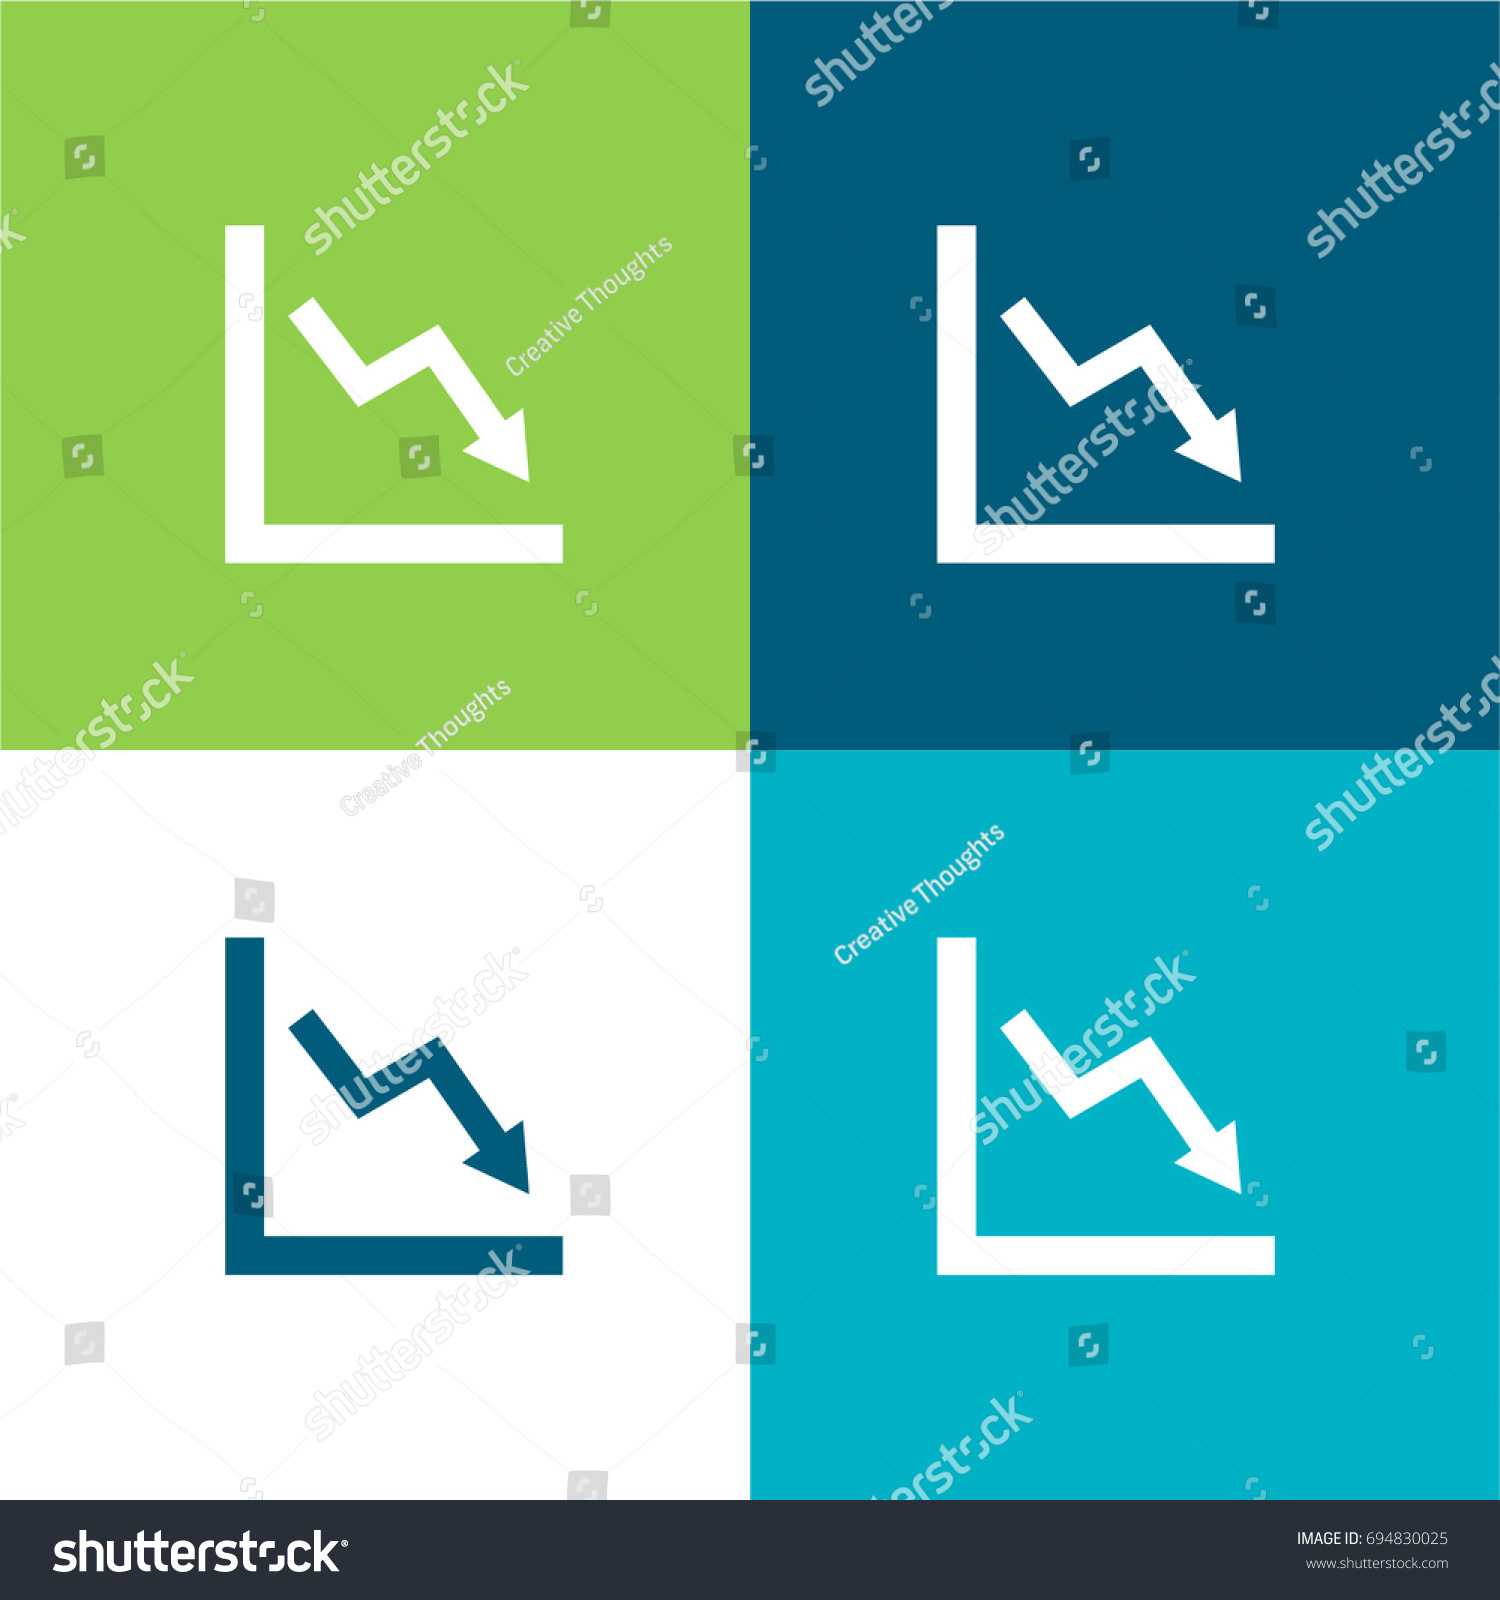 Loss Chart Green Blue Material Color Stock Vector Royalty Free